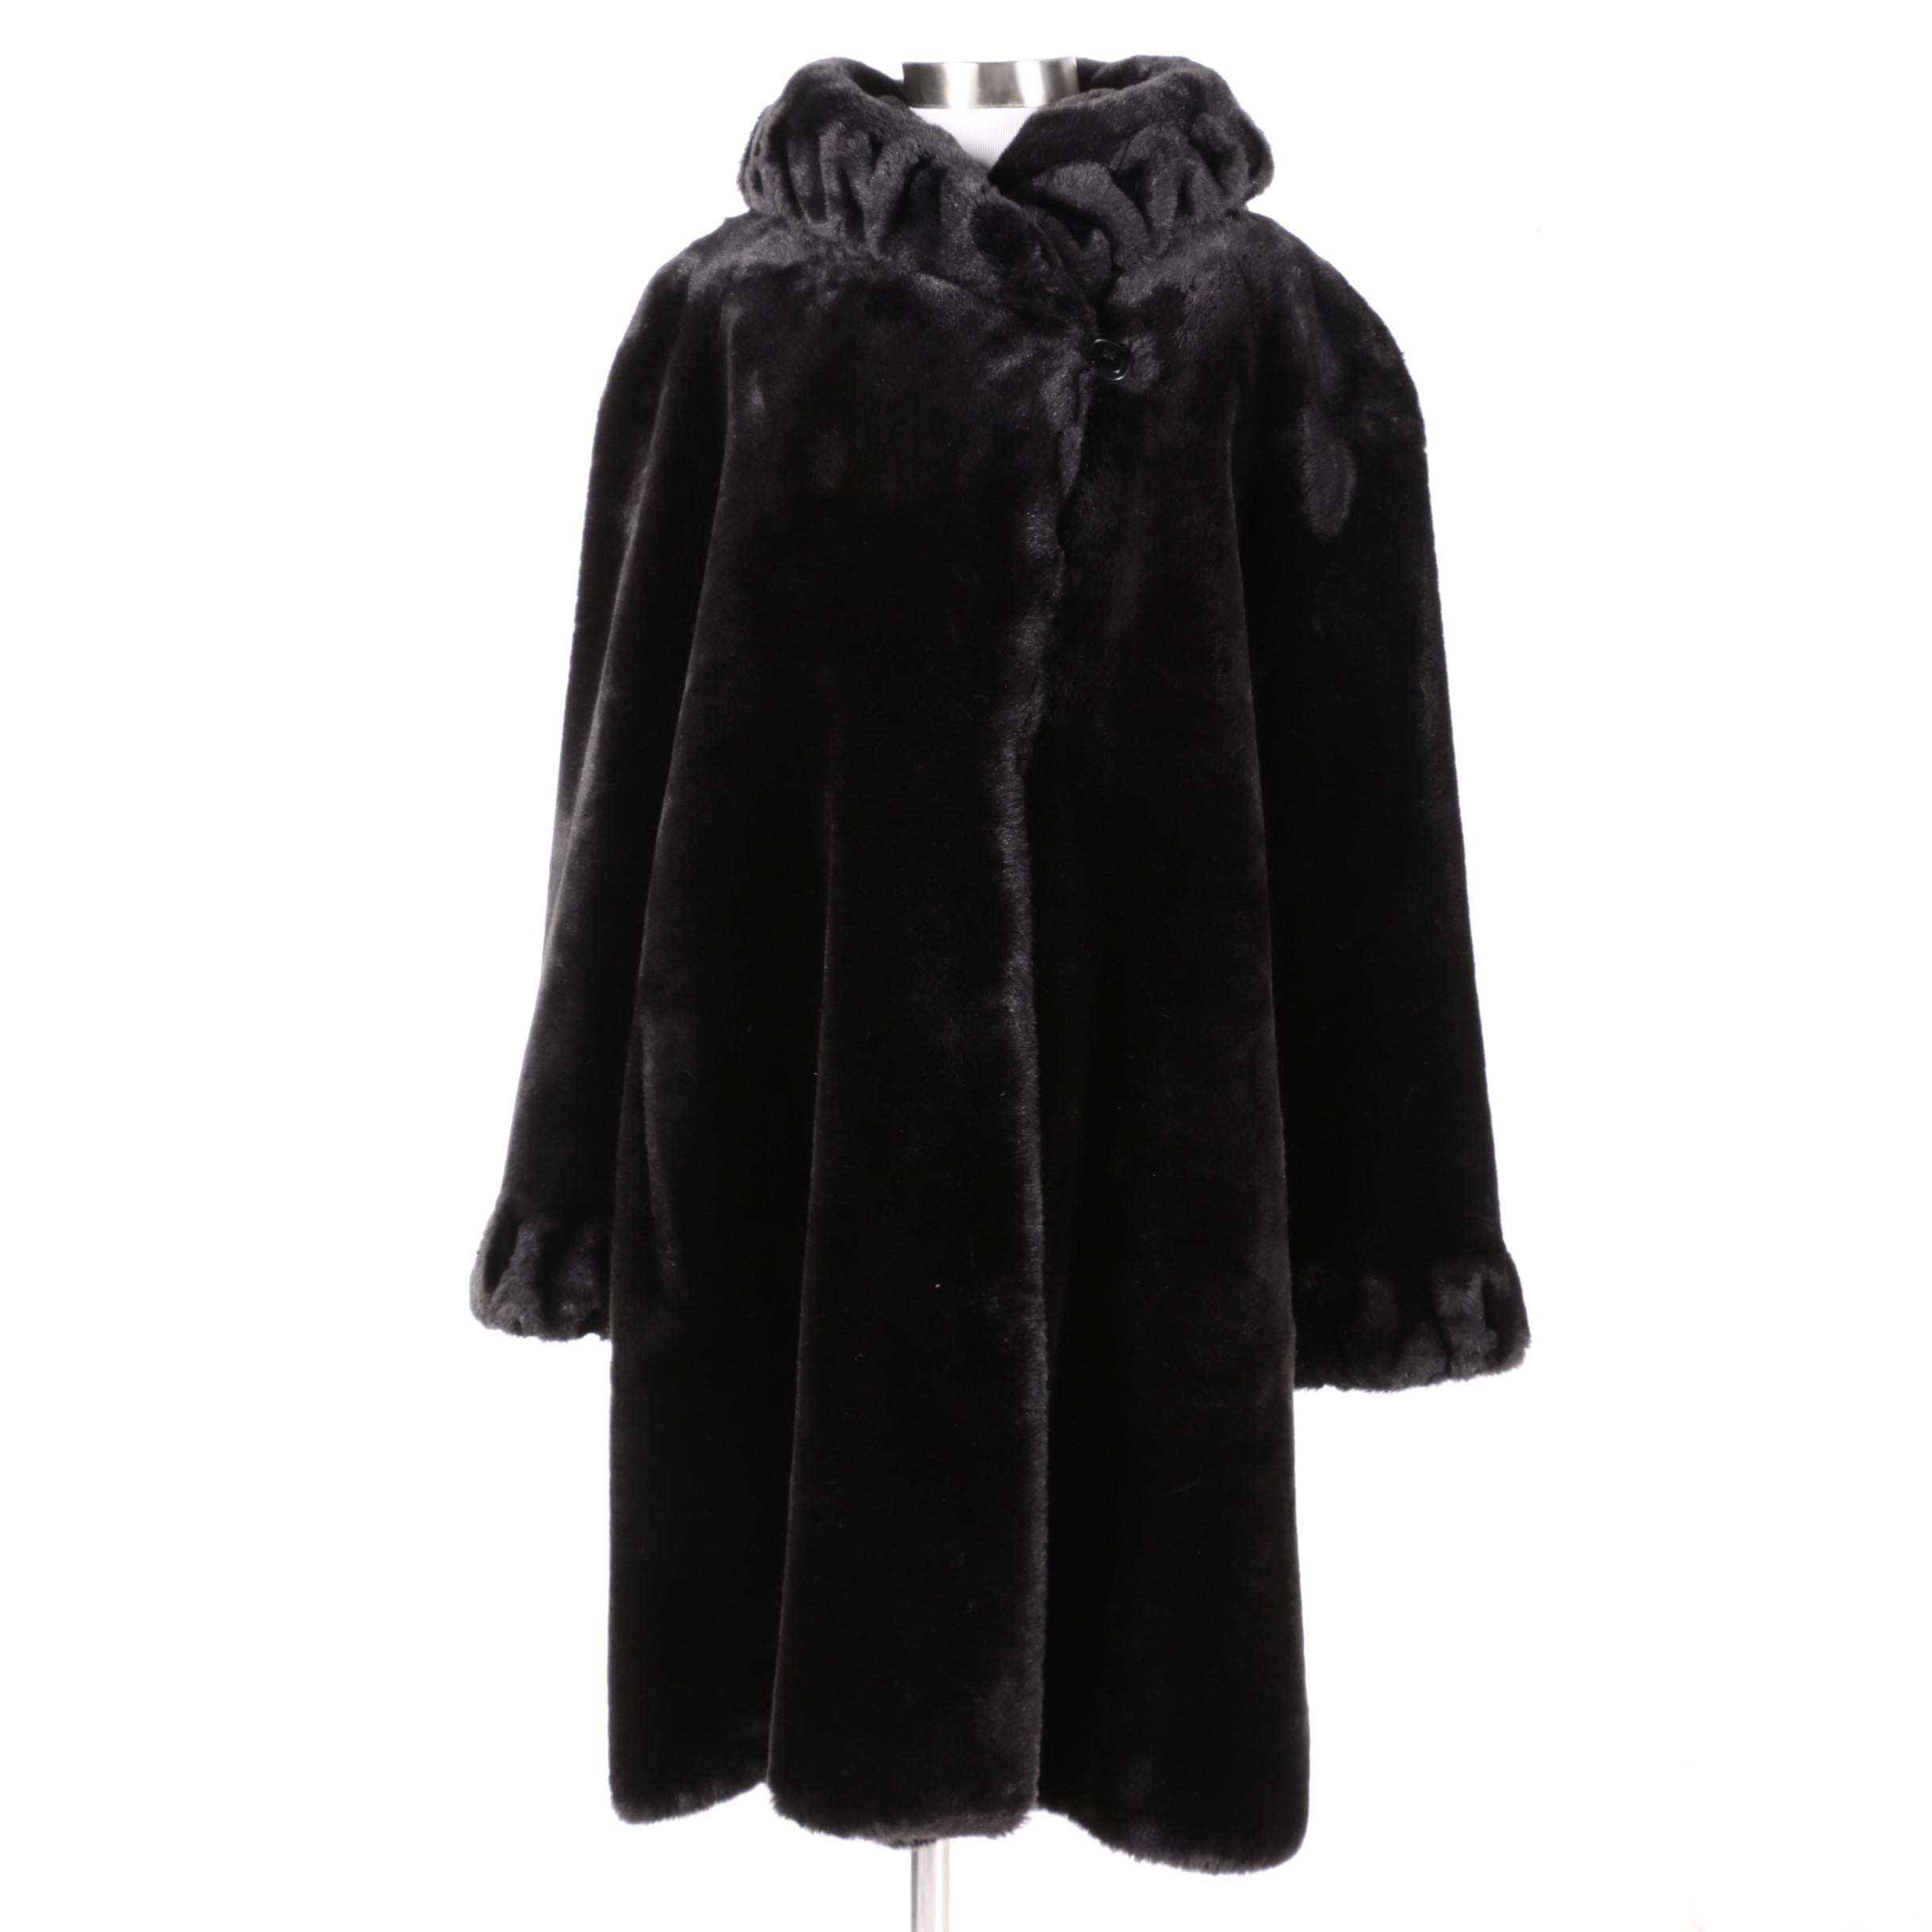 Women's Jones New York Black Faux Fur Full-Length Coat